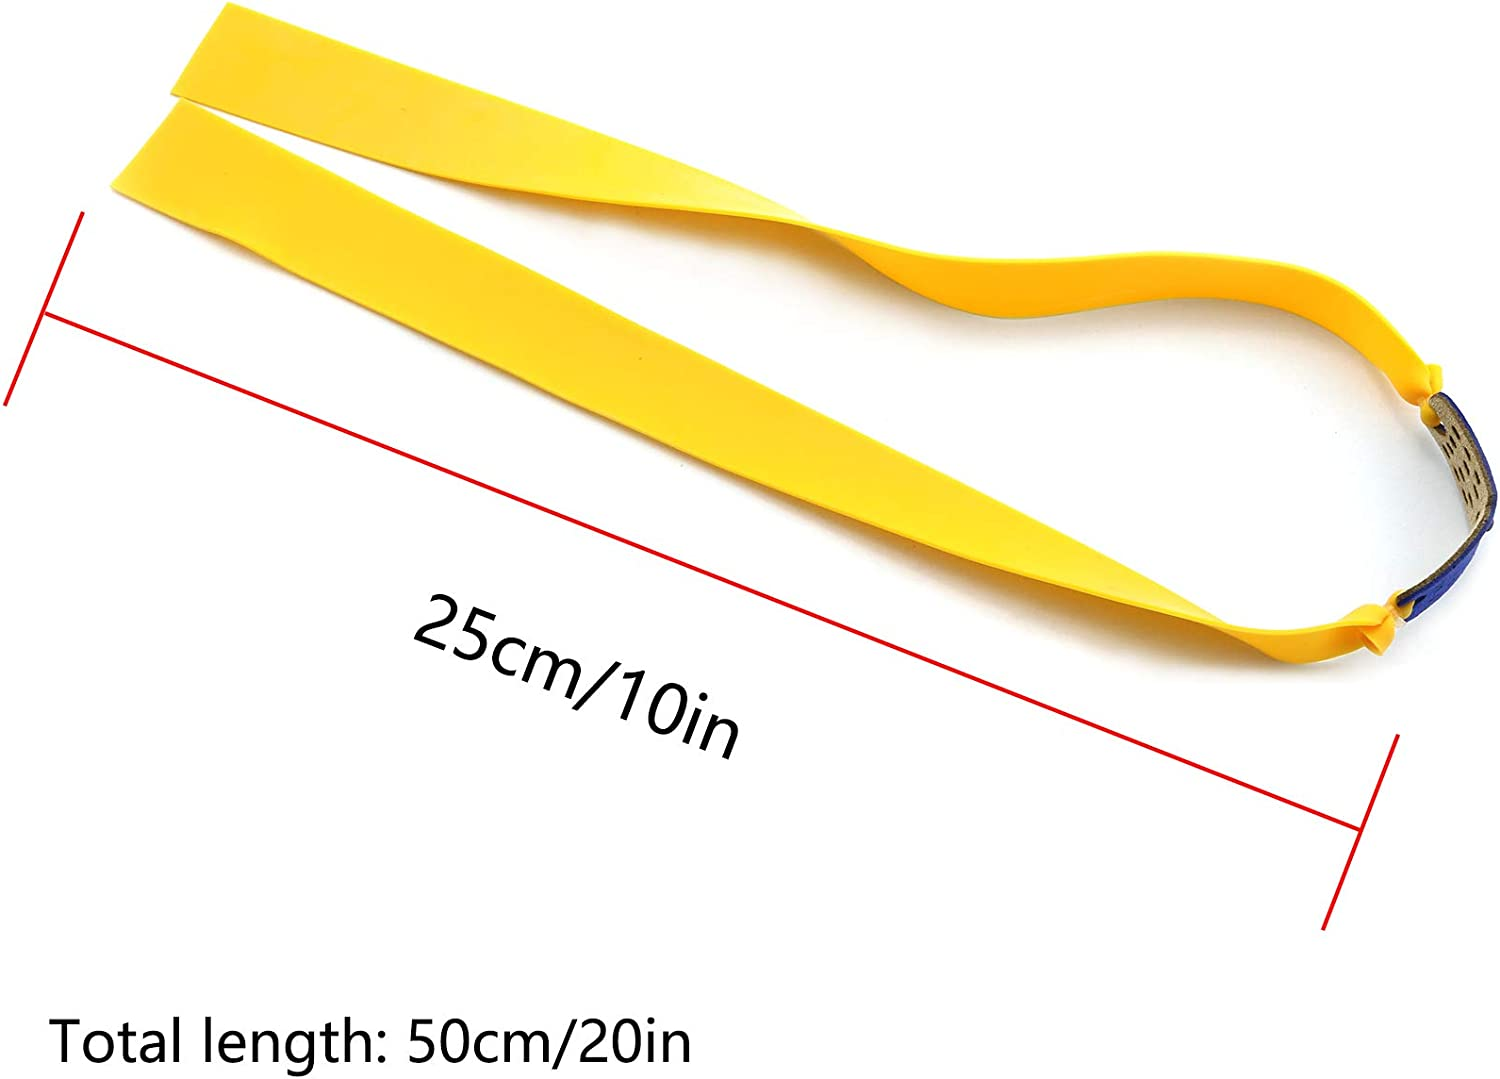 DZS Elec 12pcs Folding Yellow Flat Elastic Band 0.75mm Thickness Replacement Flat Rubber Bands for Slingshot Catapult